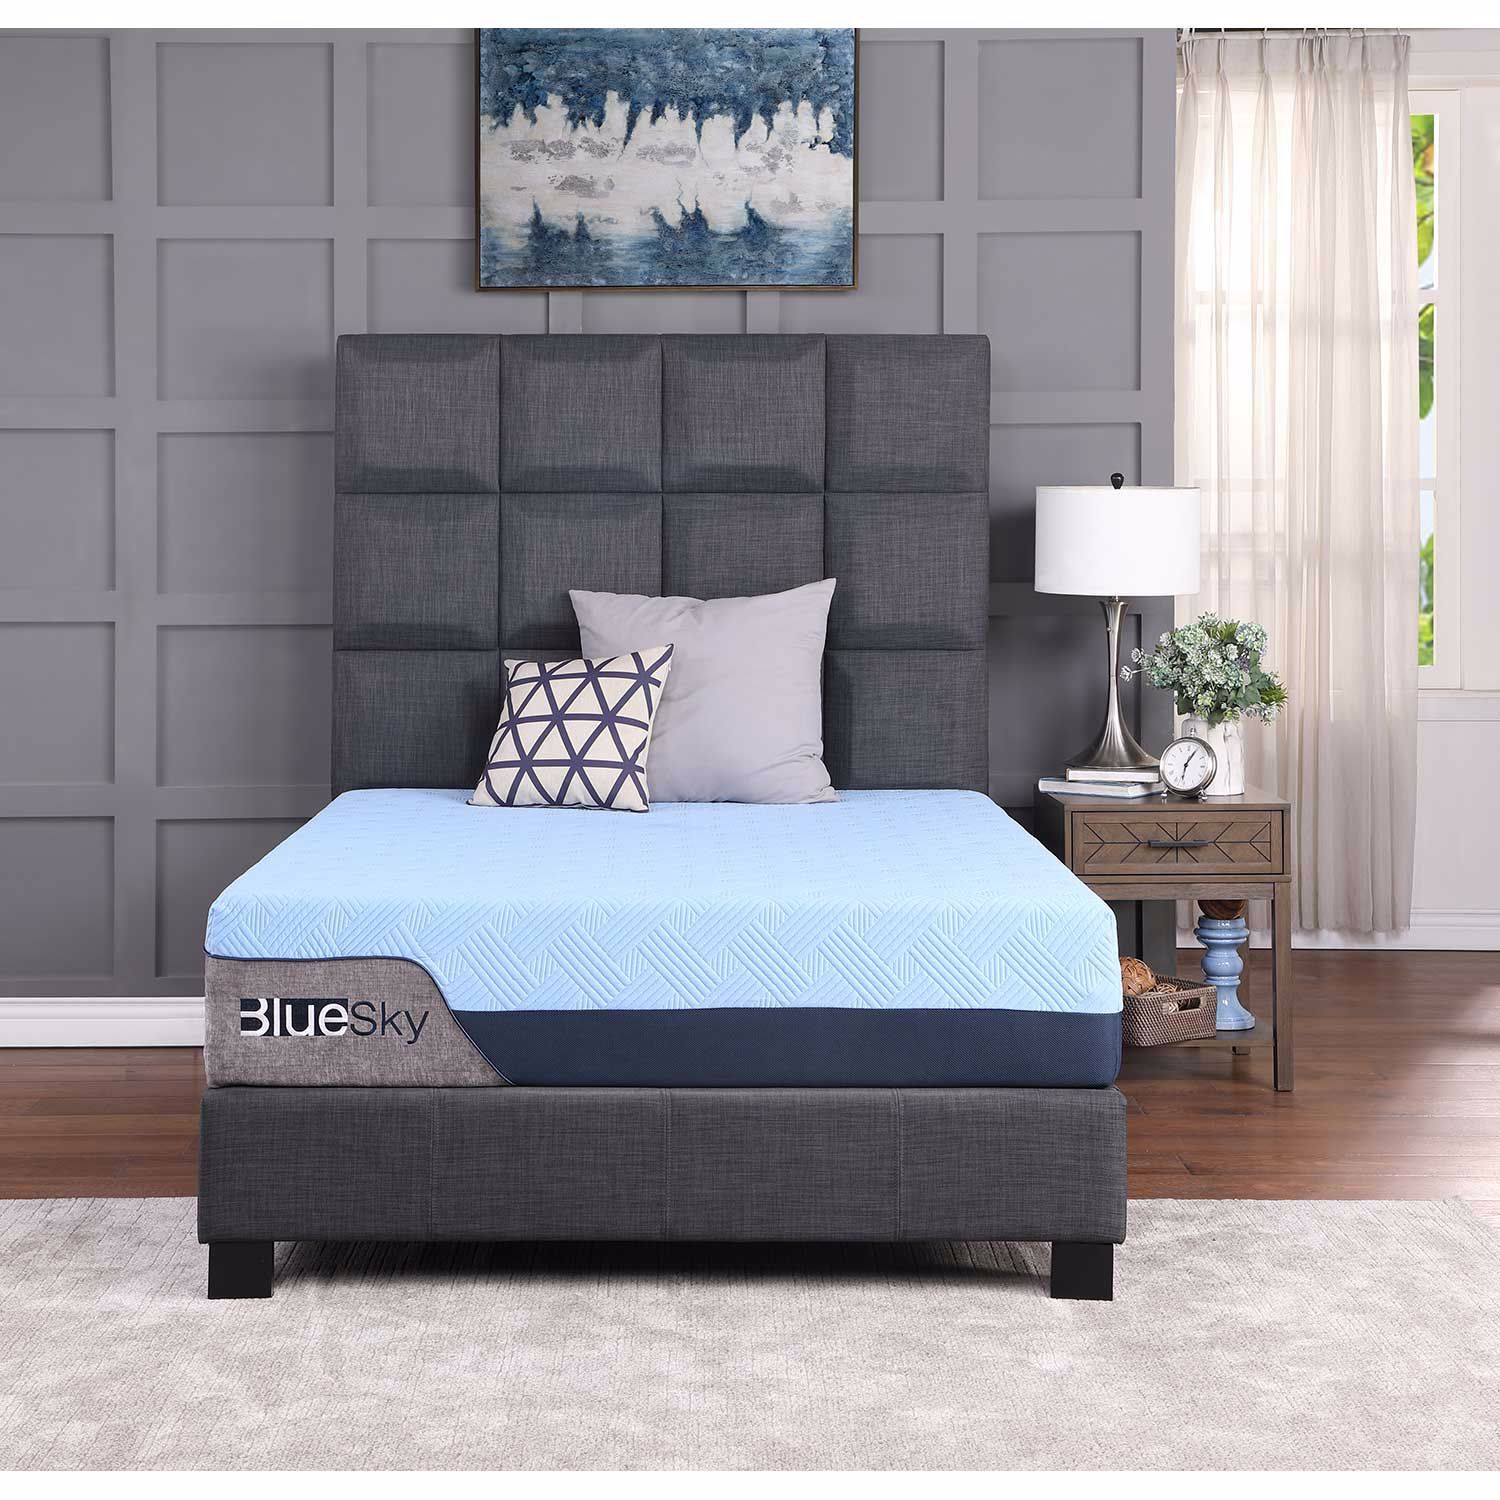 Picture of Blue Sky Twin Extra Long Mattress